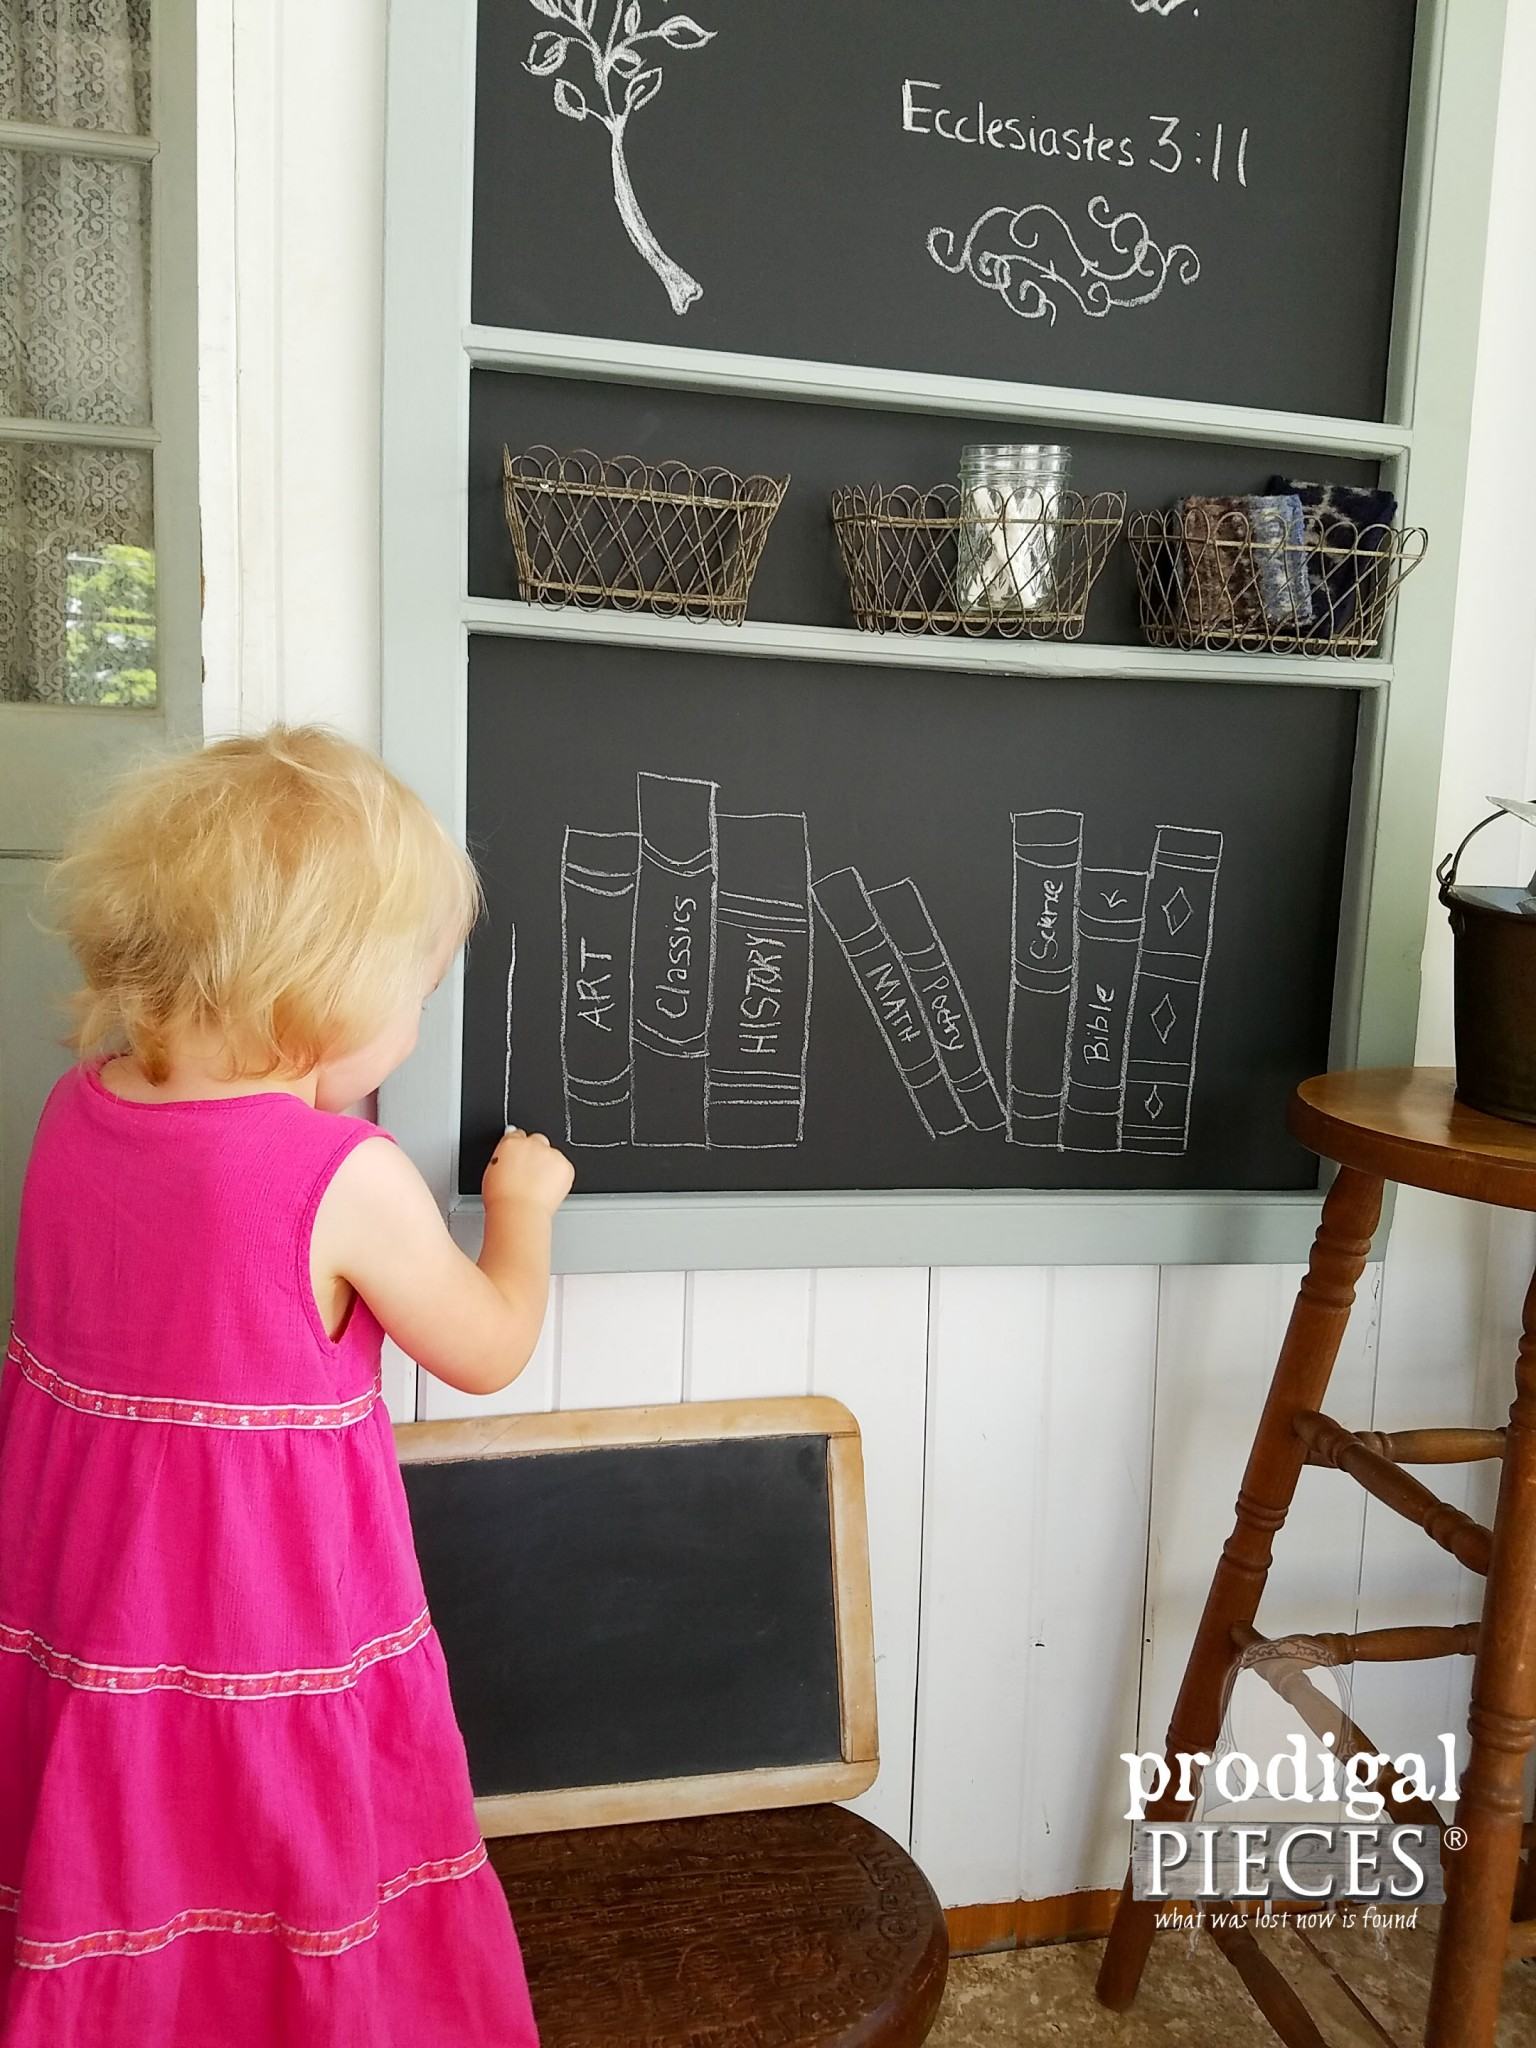 Little Girl Drawing on DIY Chalkboard | Prodigal Pieces | www.prodigalpieces.com